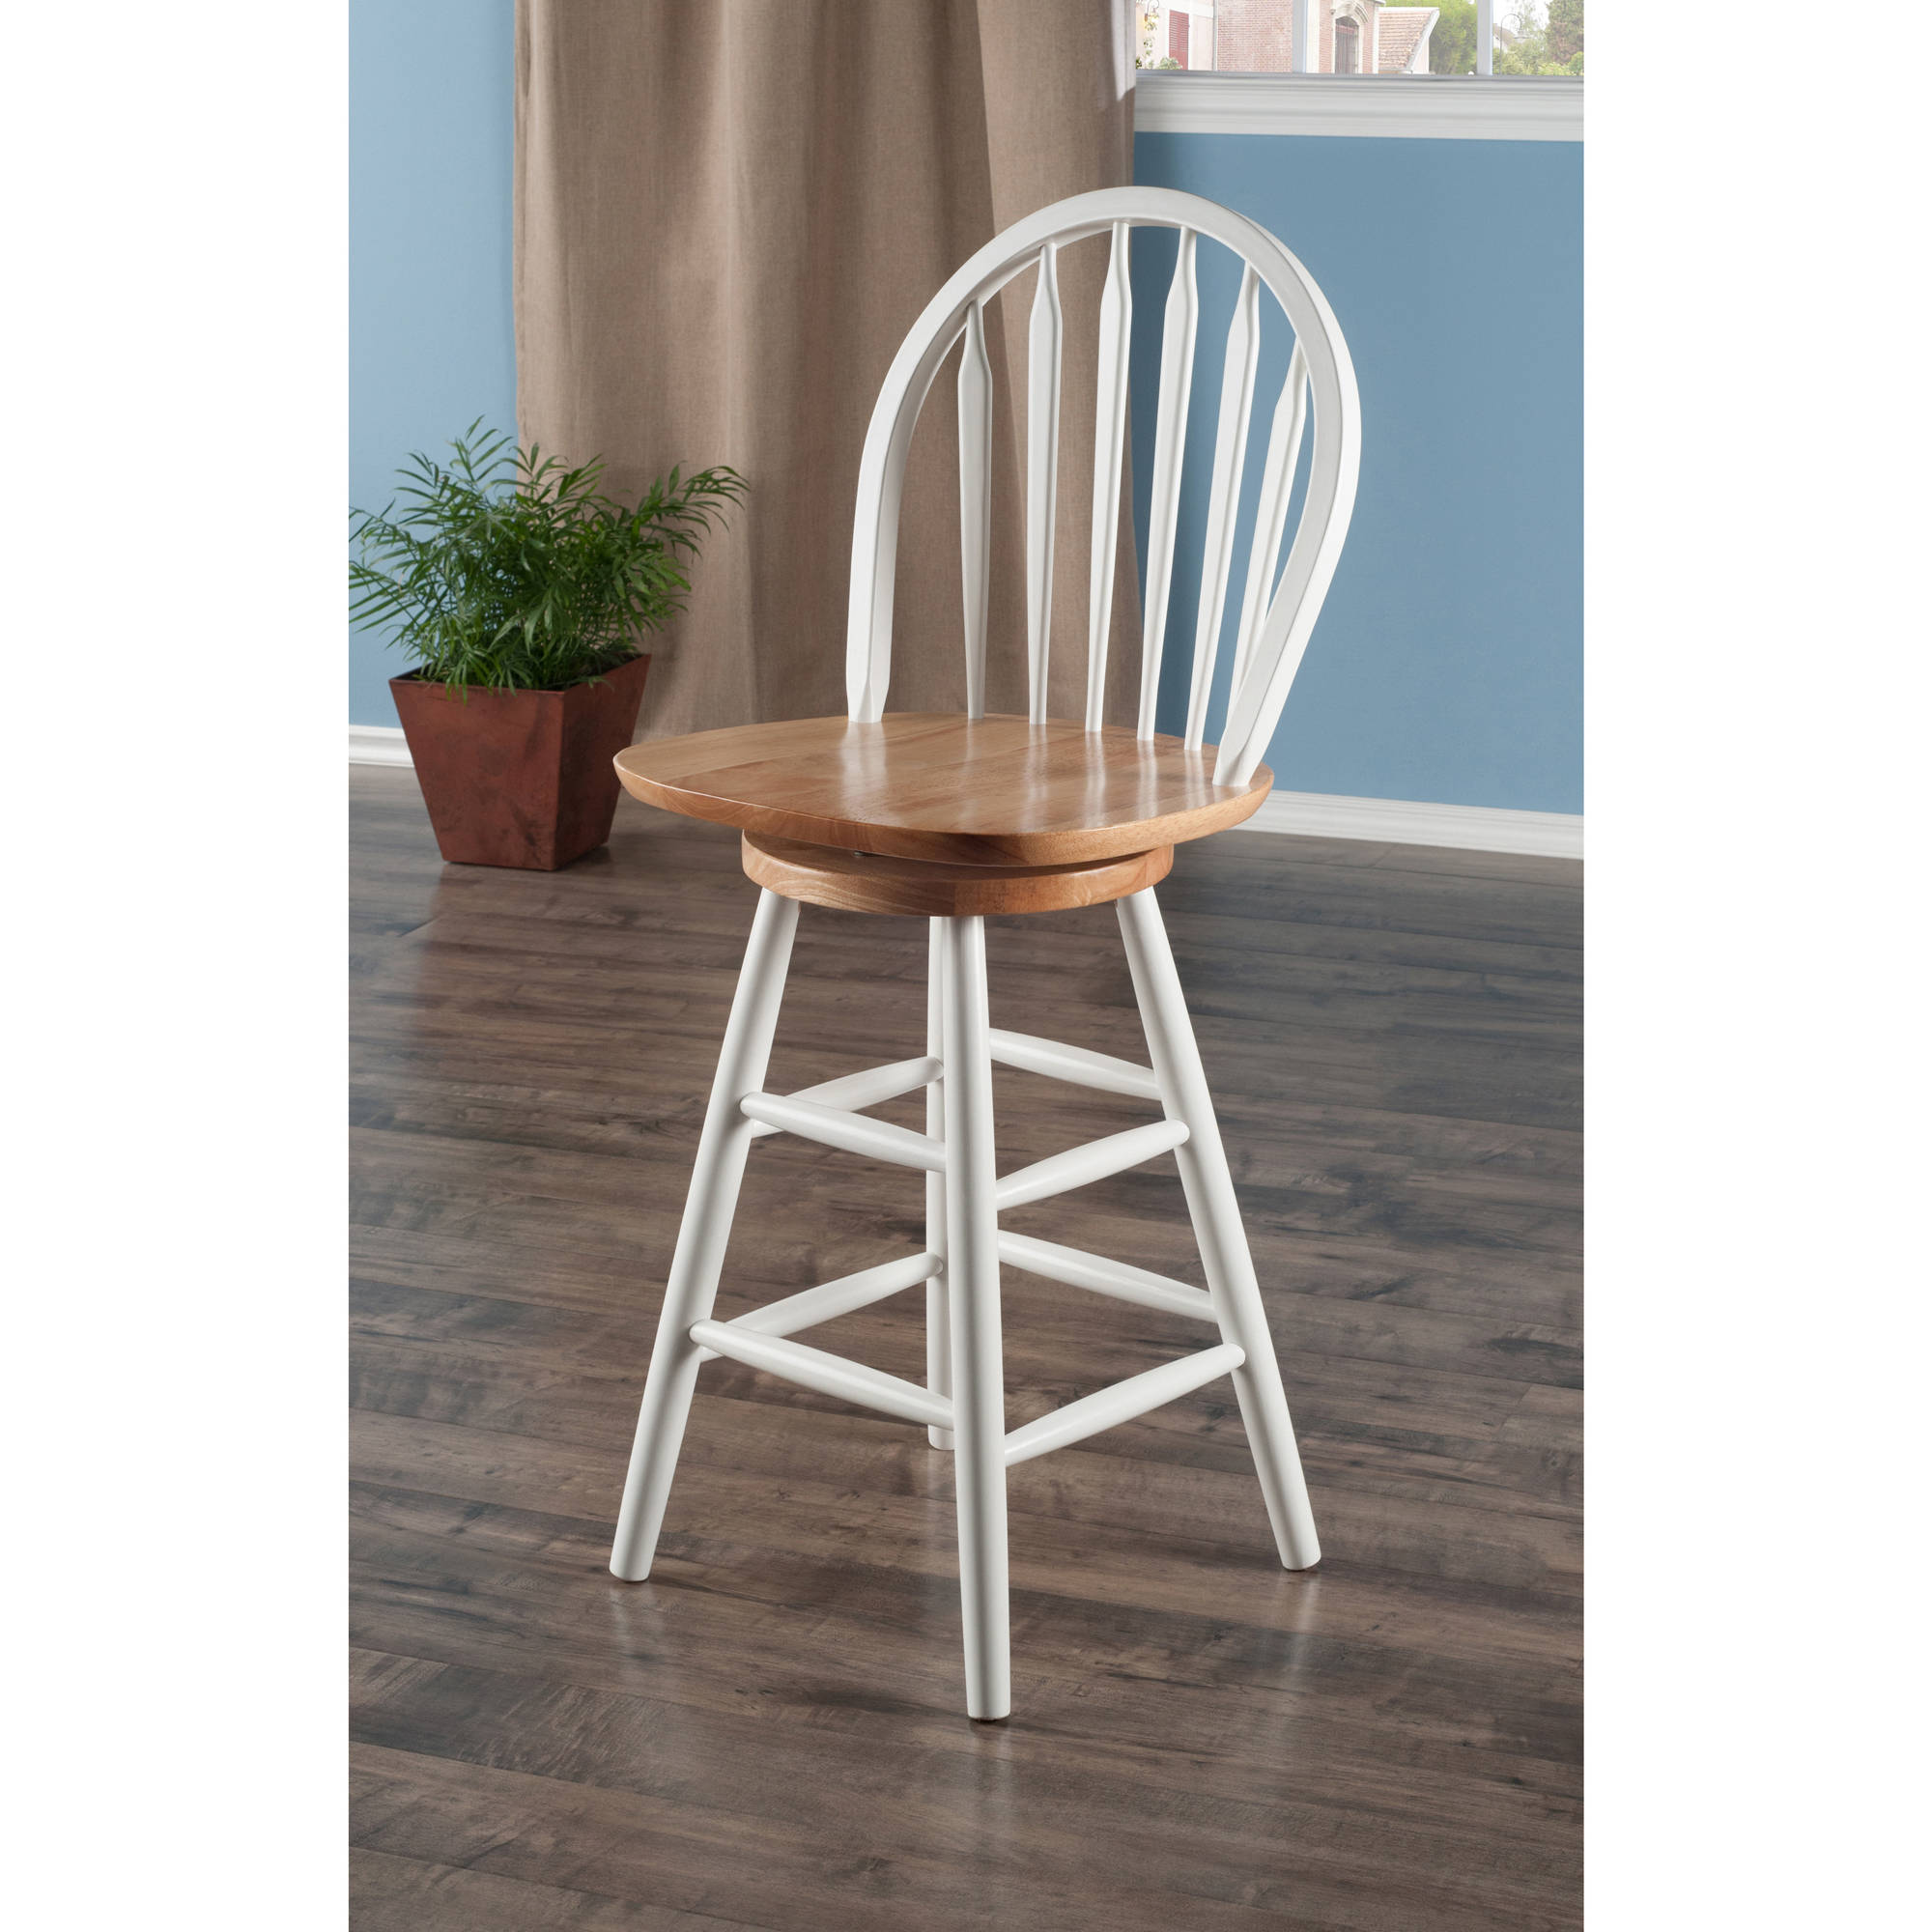 "Beveled Seat Counter Stools 24"" Set of 2 Espresso Walmart"